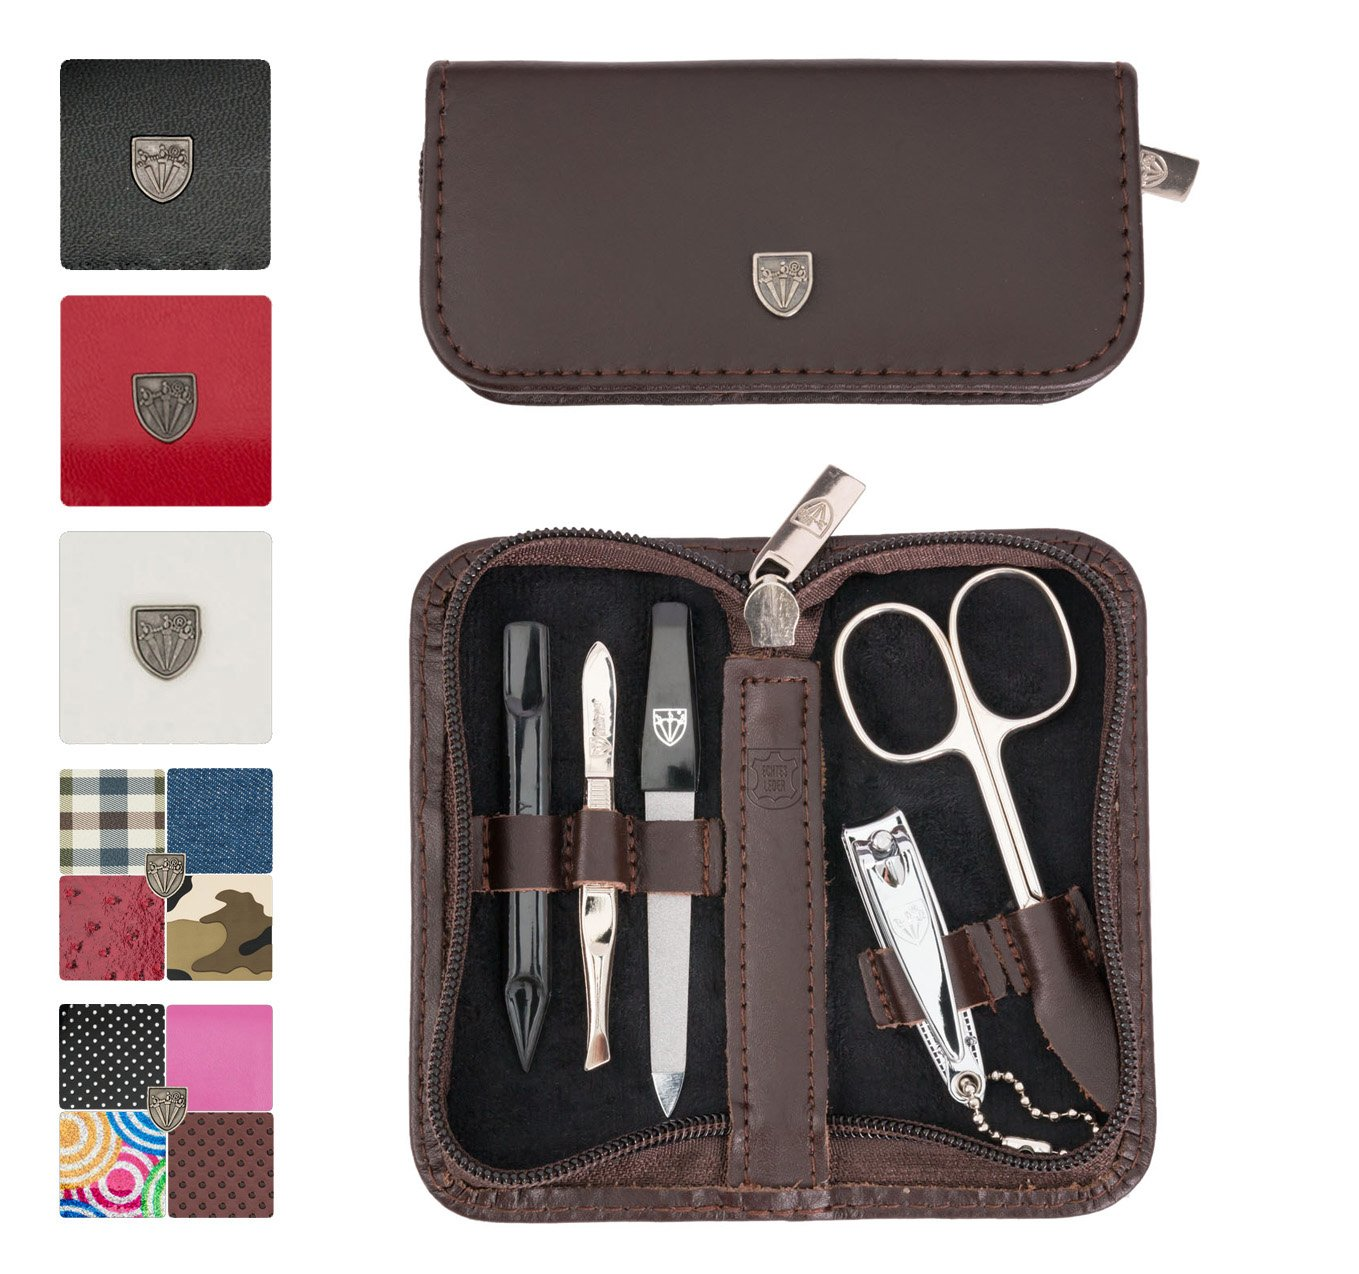 3 Swords Germany - brand quality 5 piece manicure pedicure grooming kit set for professional finger & toe nail care scissors clipper genuine leather case in gift box, Made in Solingen Germany (03638)